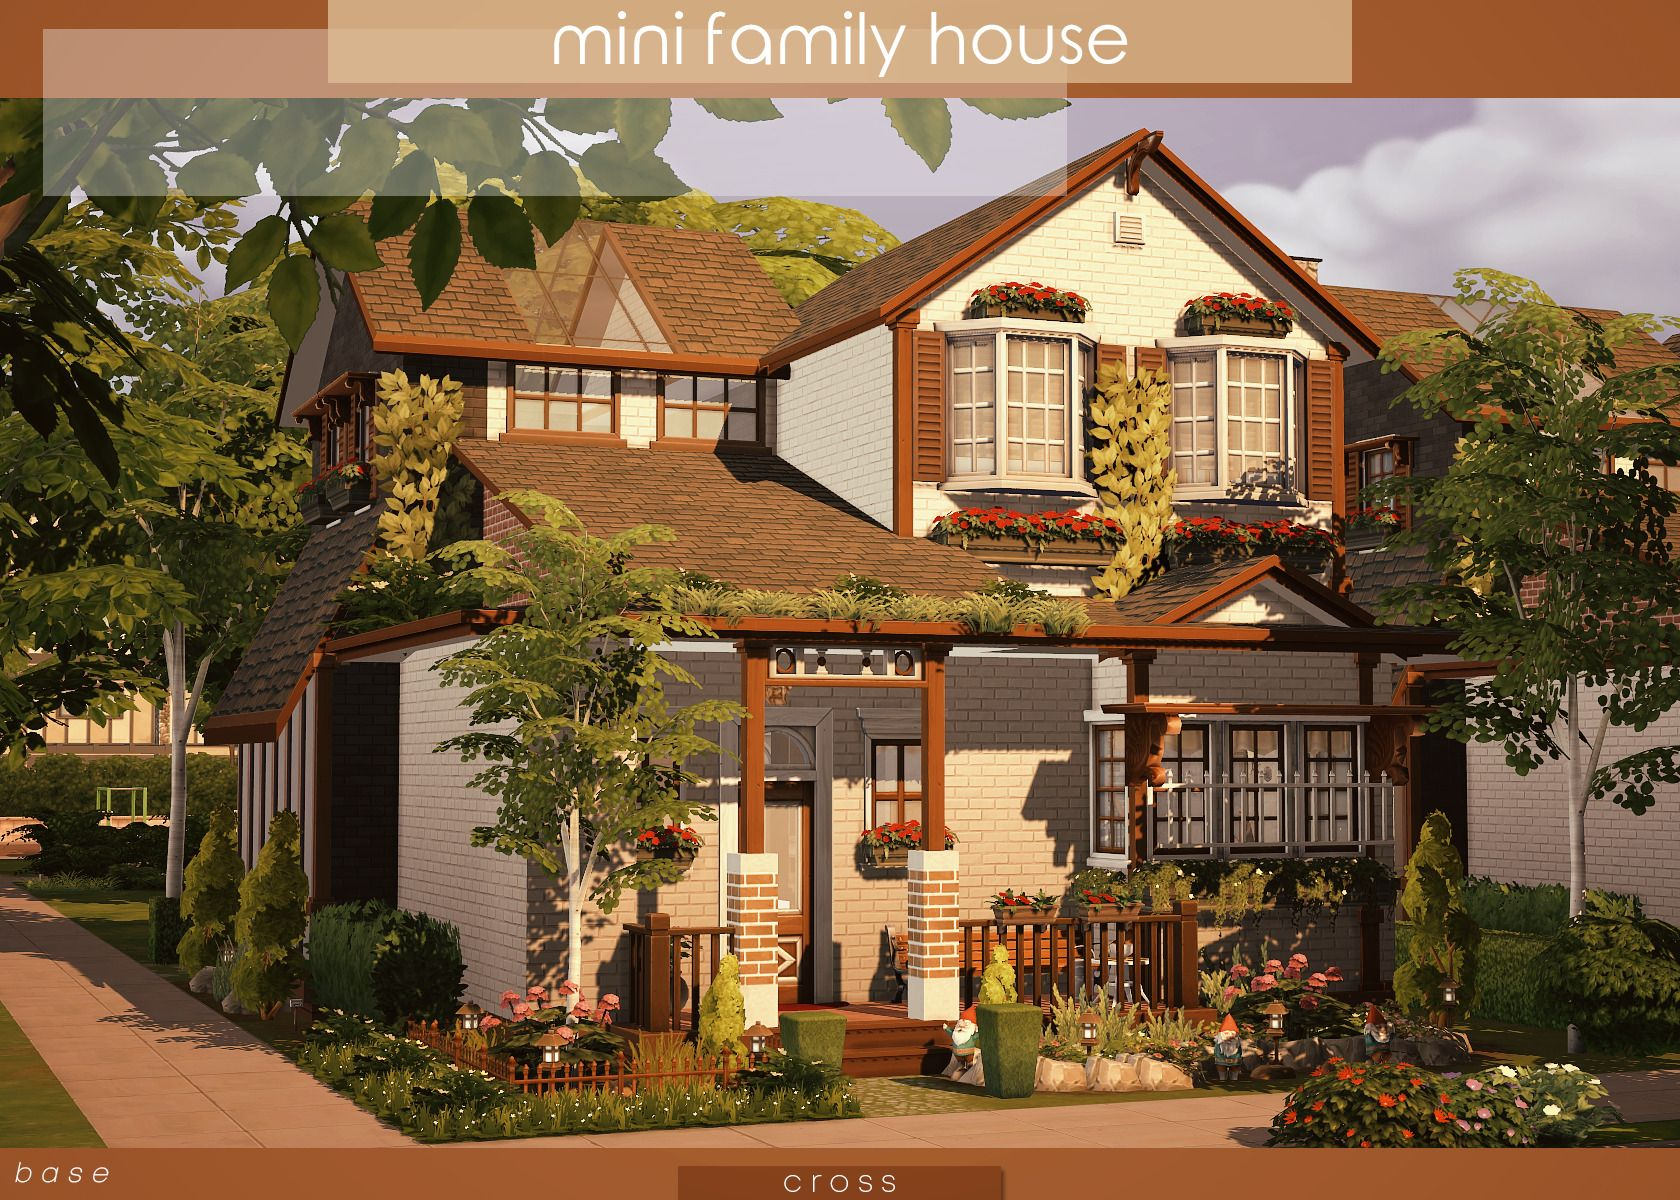 How To Get Free Houses In The Sims 4